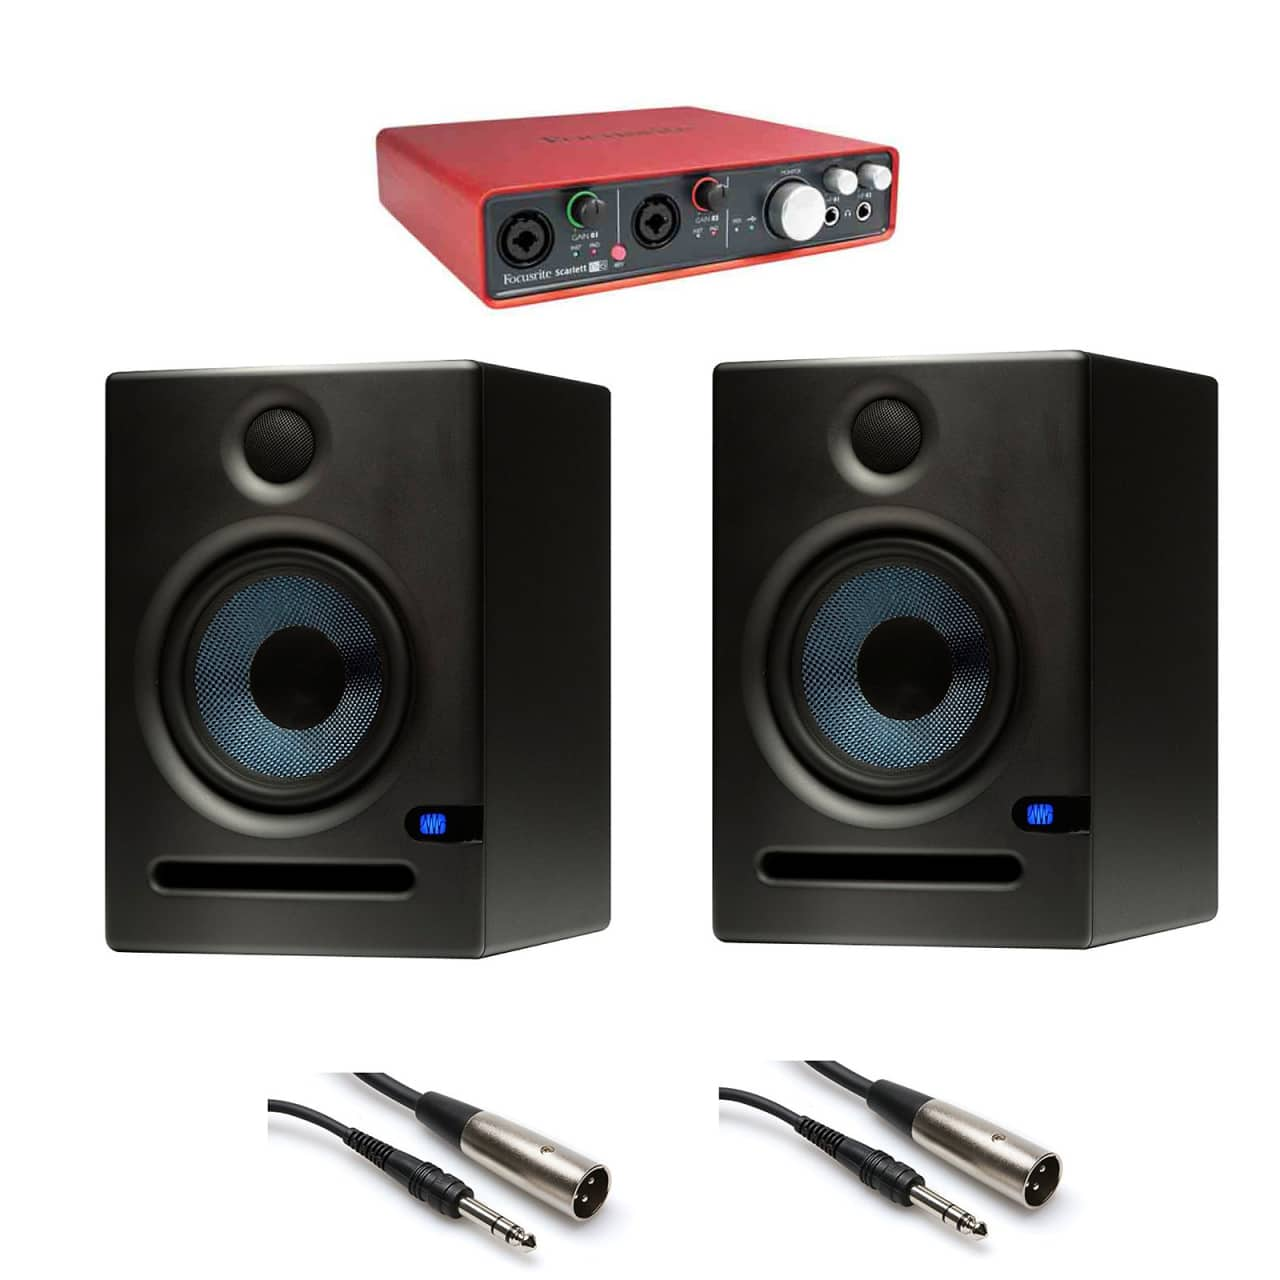 focusrite scarlett 6i6 usb audio interface with presonus eris reverb. Black Bedroom Furniture Sets. Home Design Ideas